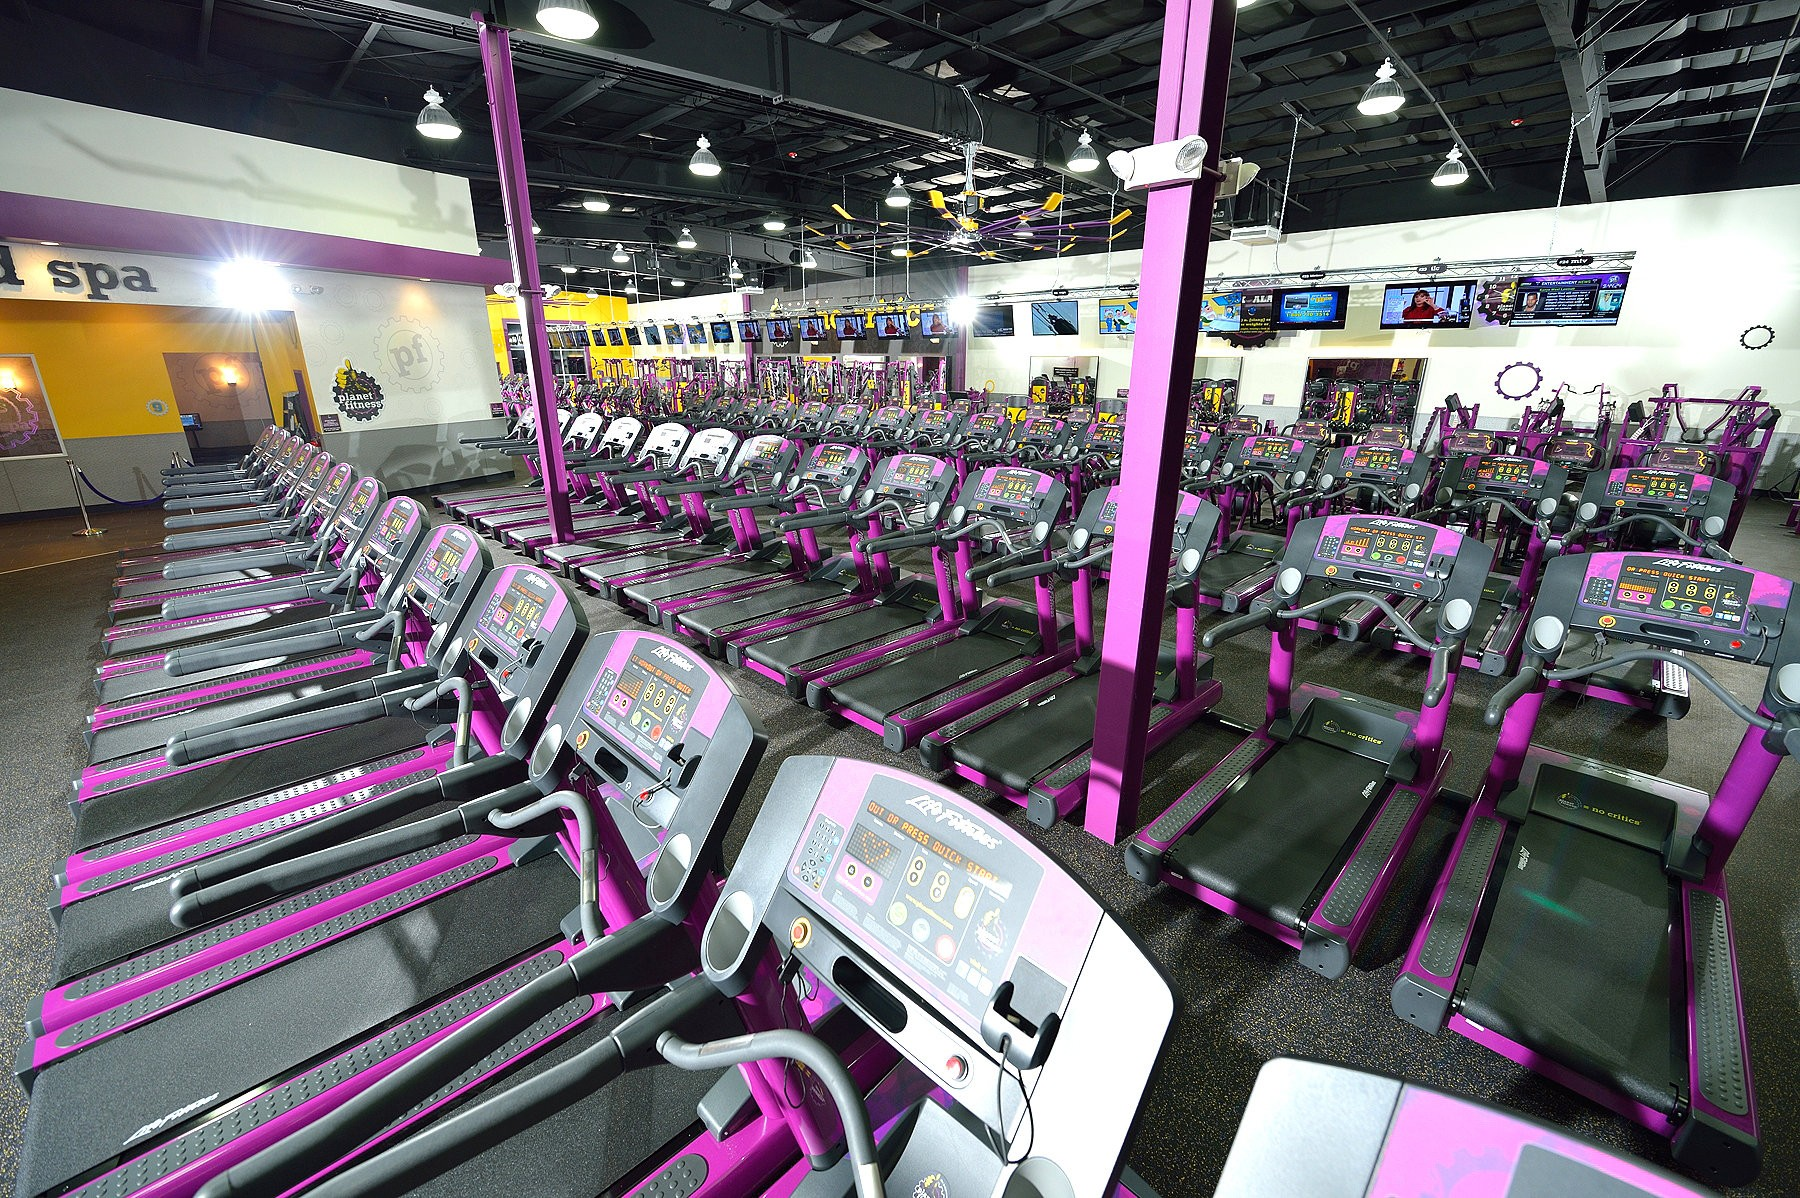 New Planet Fitness Gym Aims To Offer Affordability No Gymtimidation Environment Mlive Com